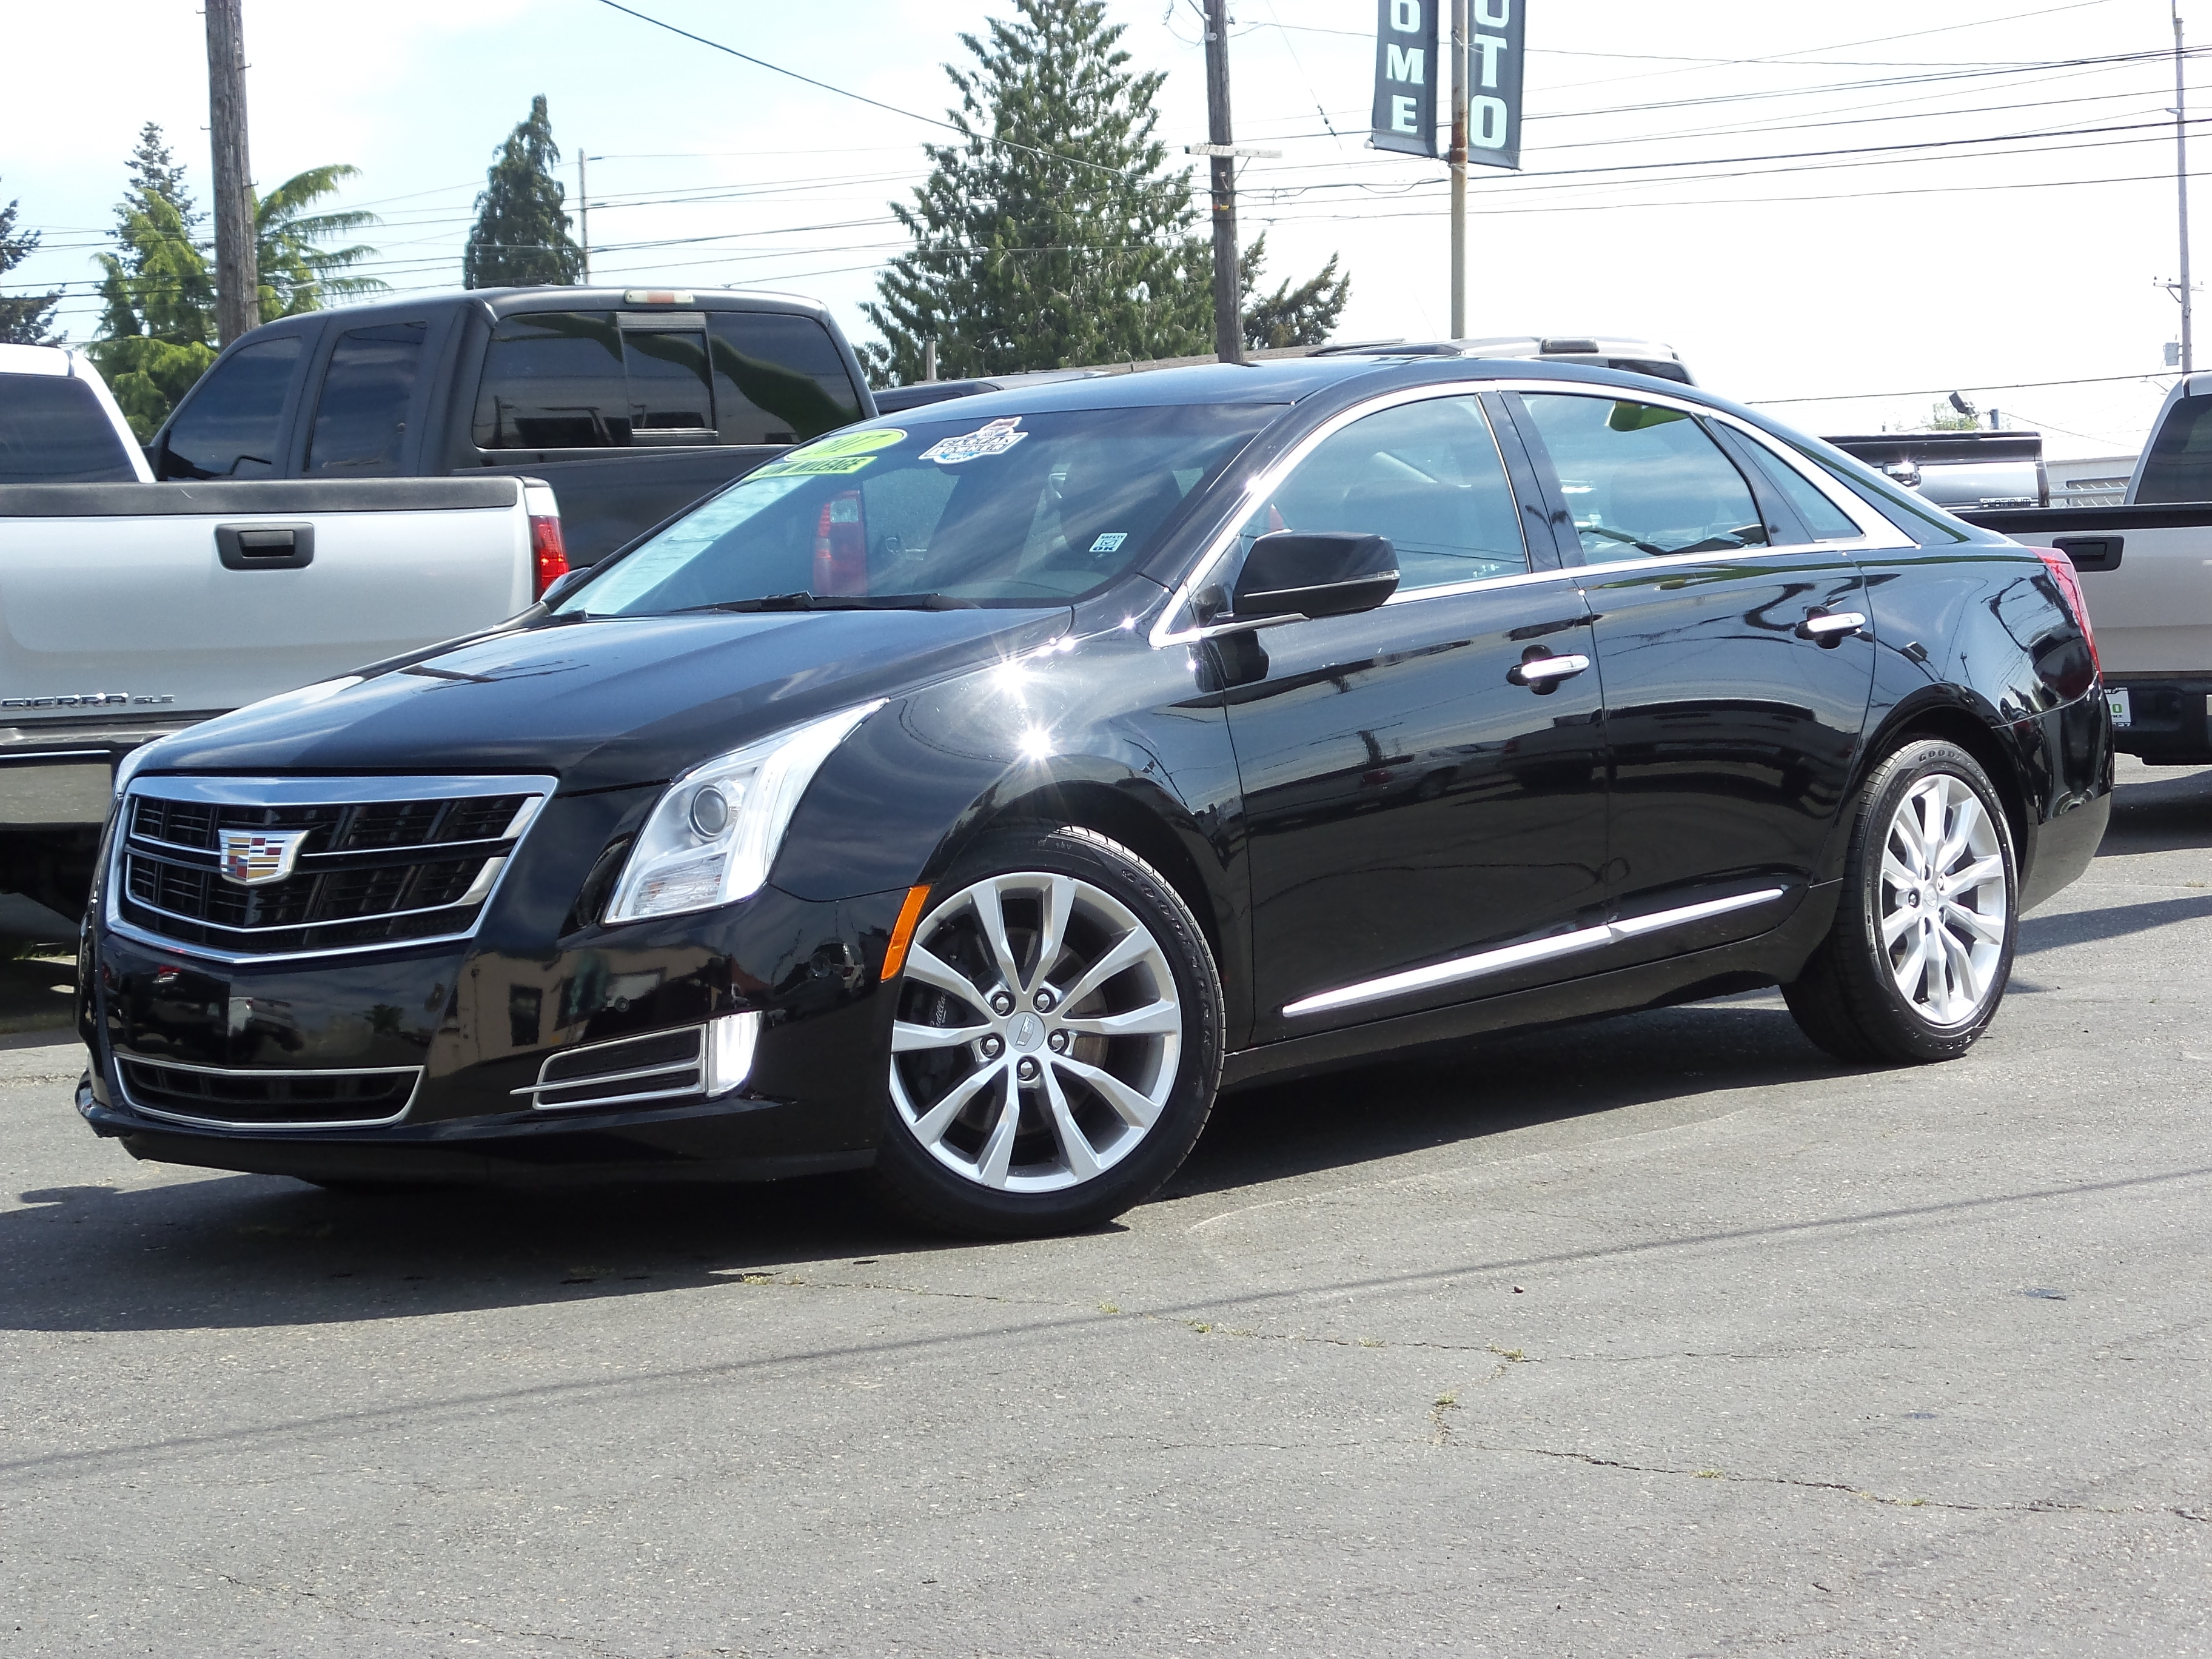 photo dp vehicles vehiclesearchresults la for sale in hammond xts cadillac all vehicle